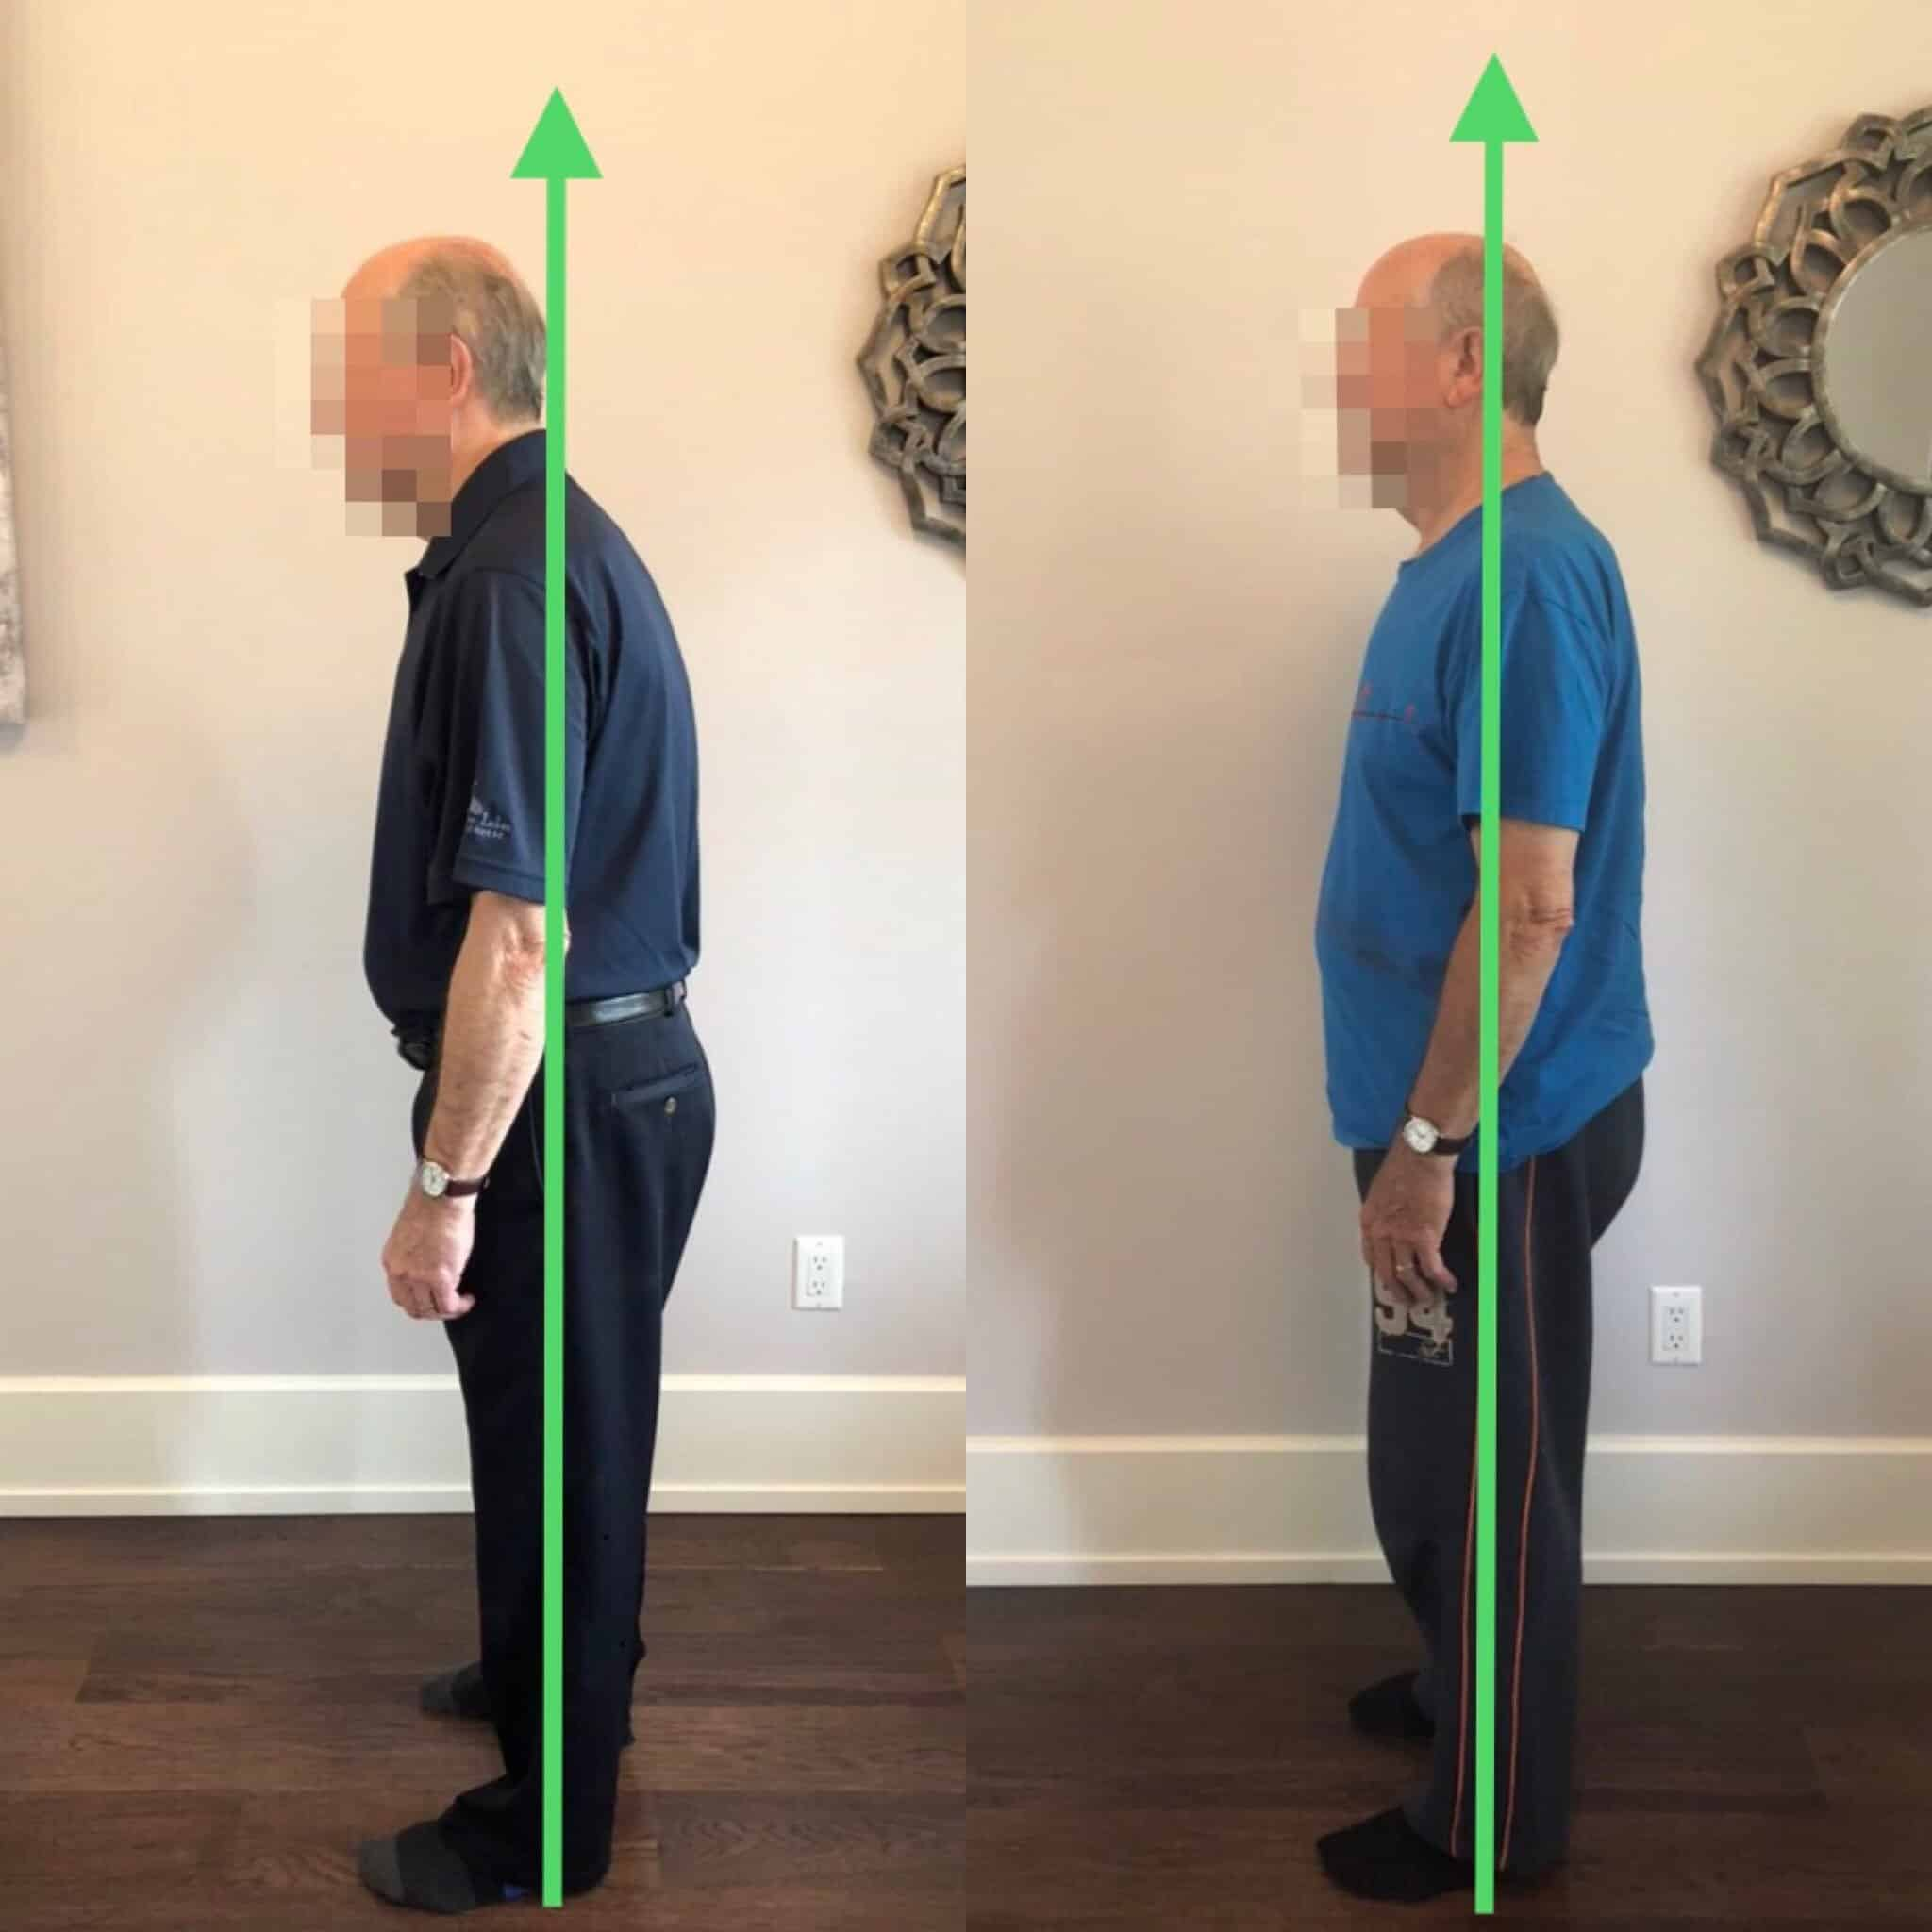 After 3 Somatics sessions, this client's posture improved dramatically and he eliminated his shoulder pain